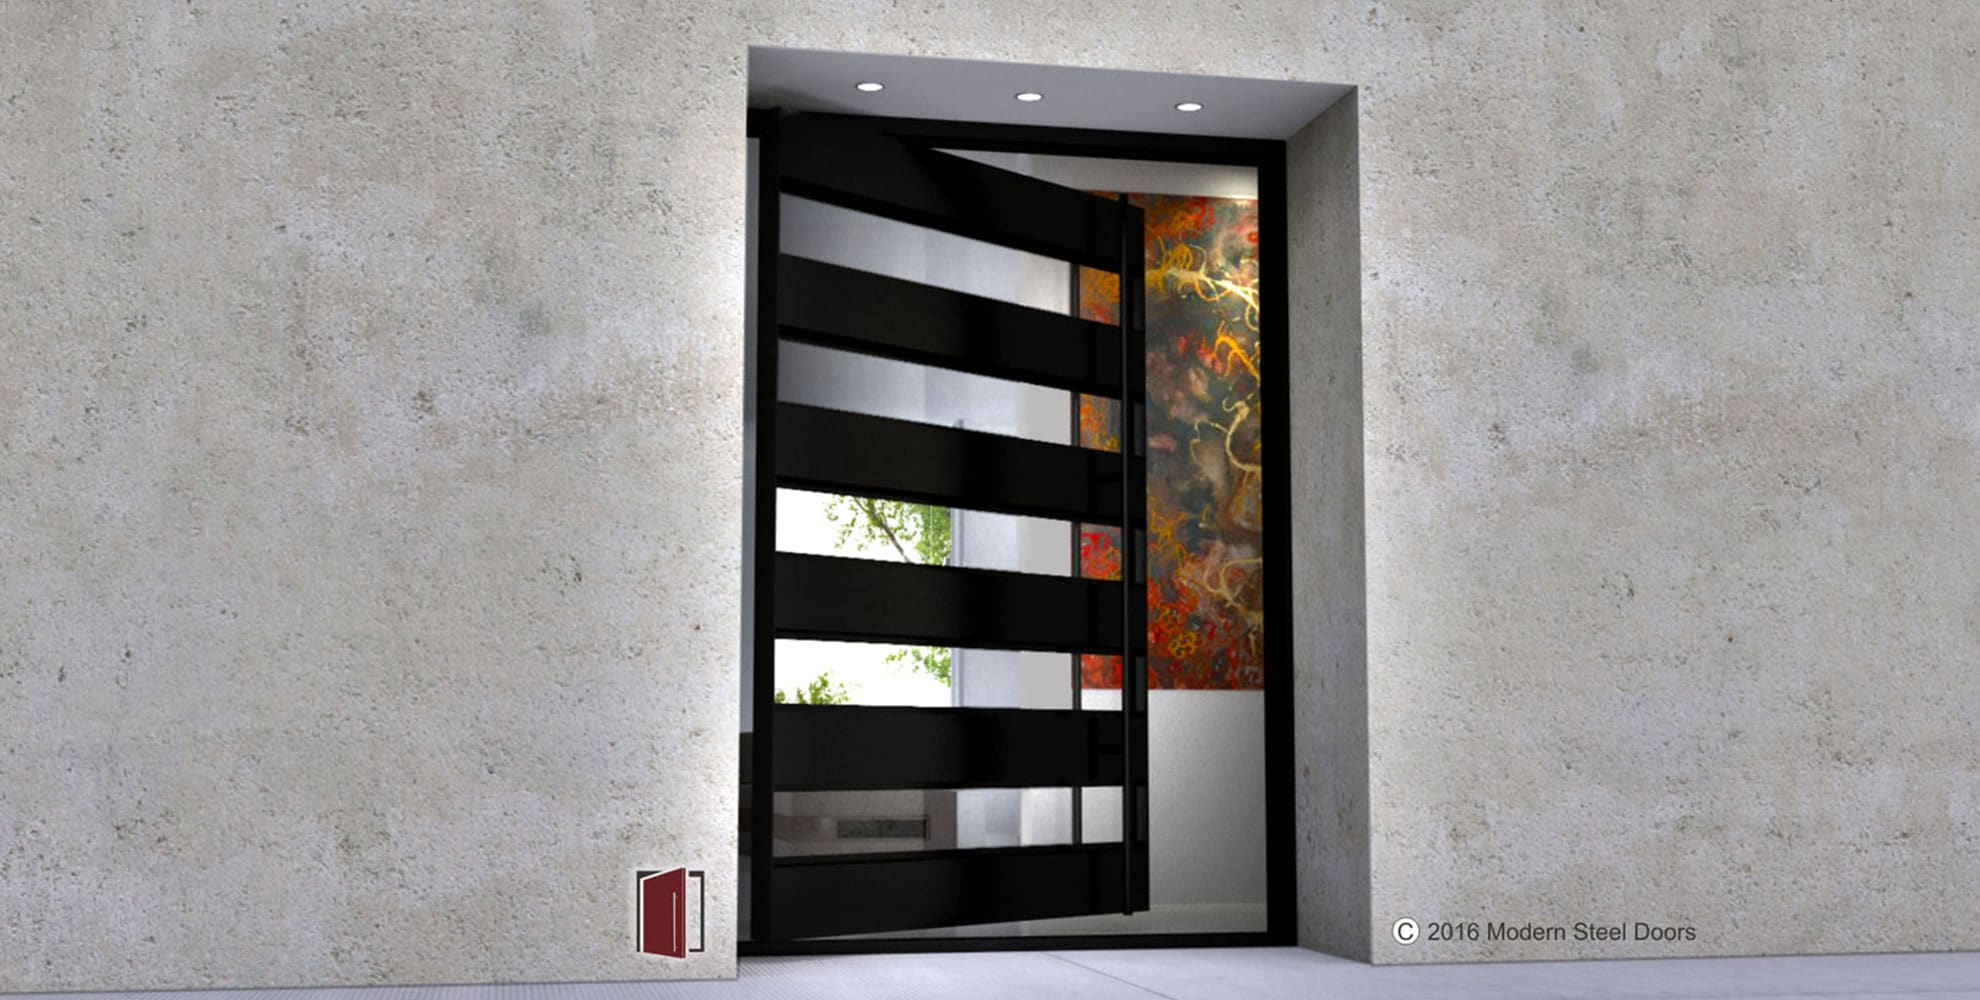 1000 #6E3E28 Modern Steel Doors save image Metal Front Doors With Glass 40471980